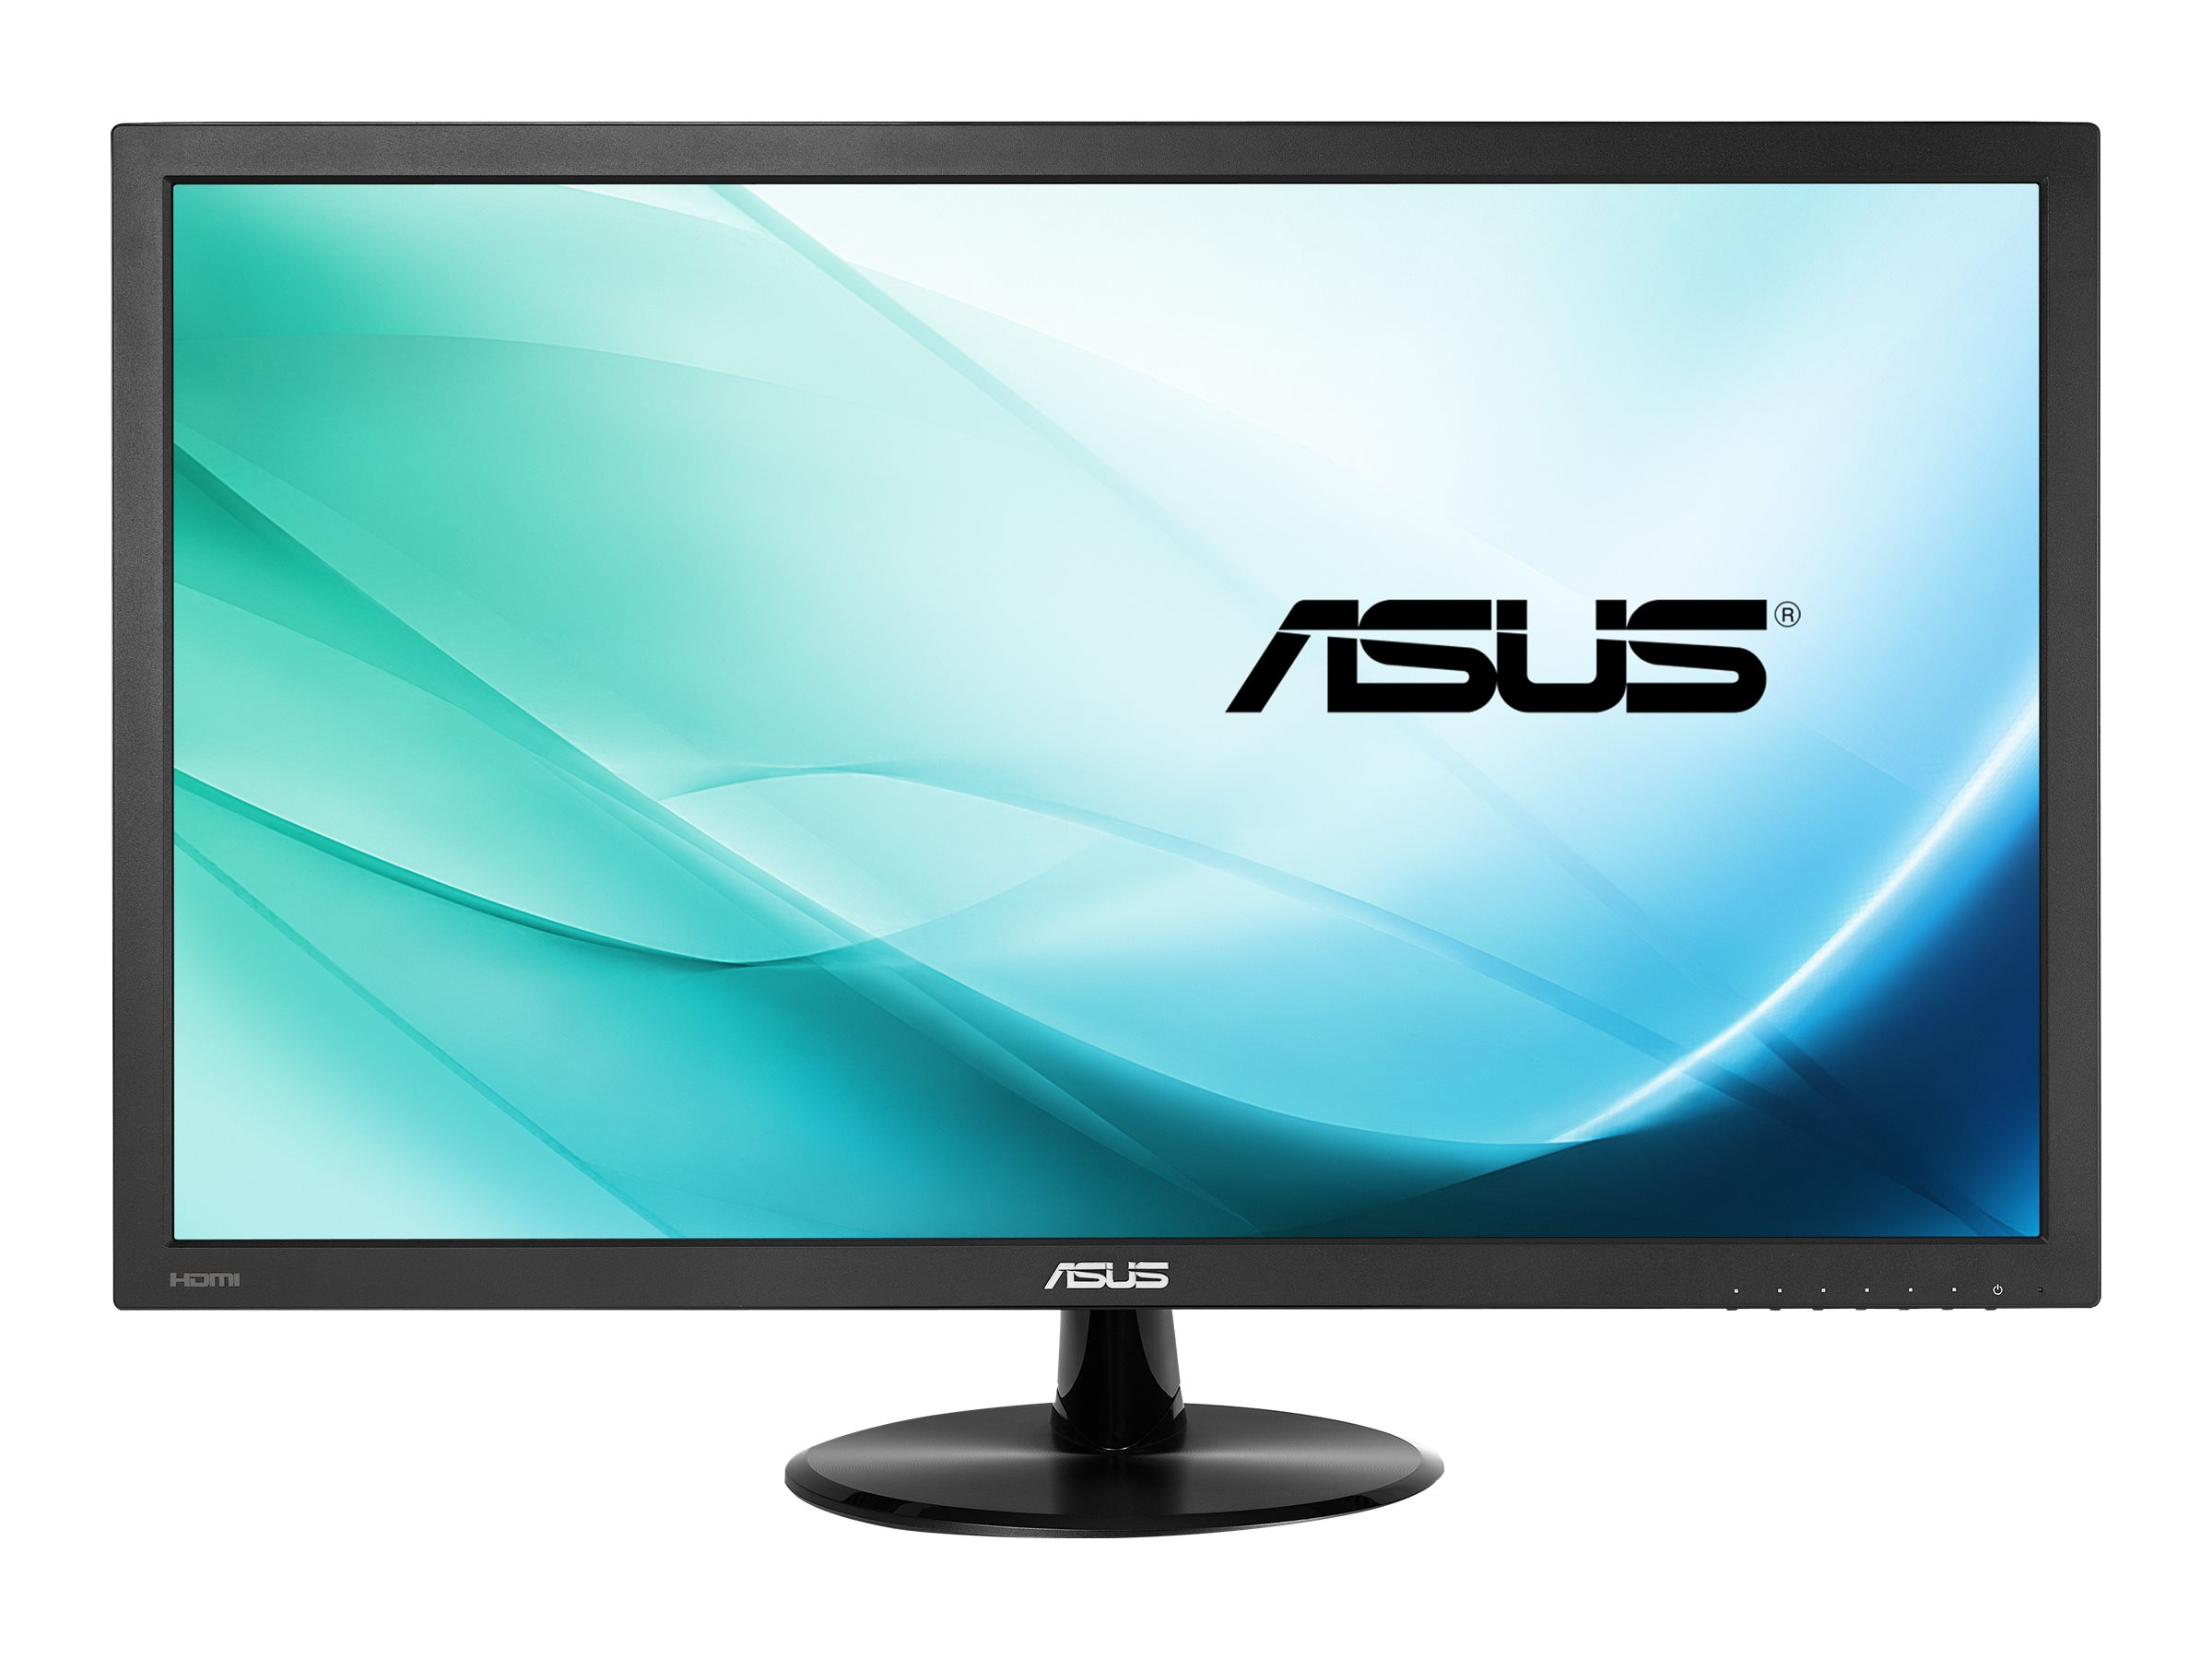 Asus 23.6 VP247H-P Full HD LED-LCD Monitor, Black, VP247H-P, 30866593, Monitors - LED-LCD